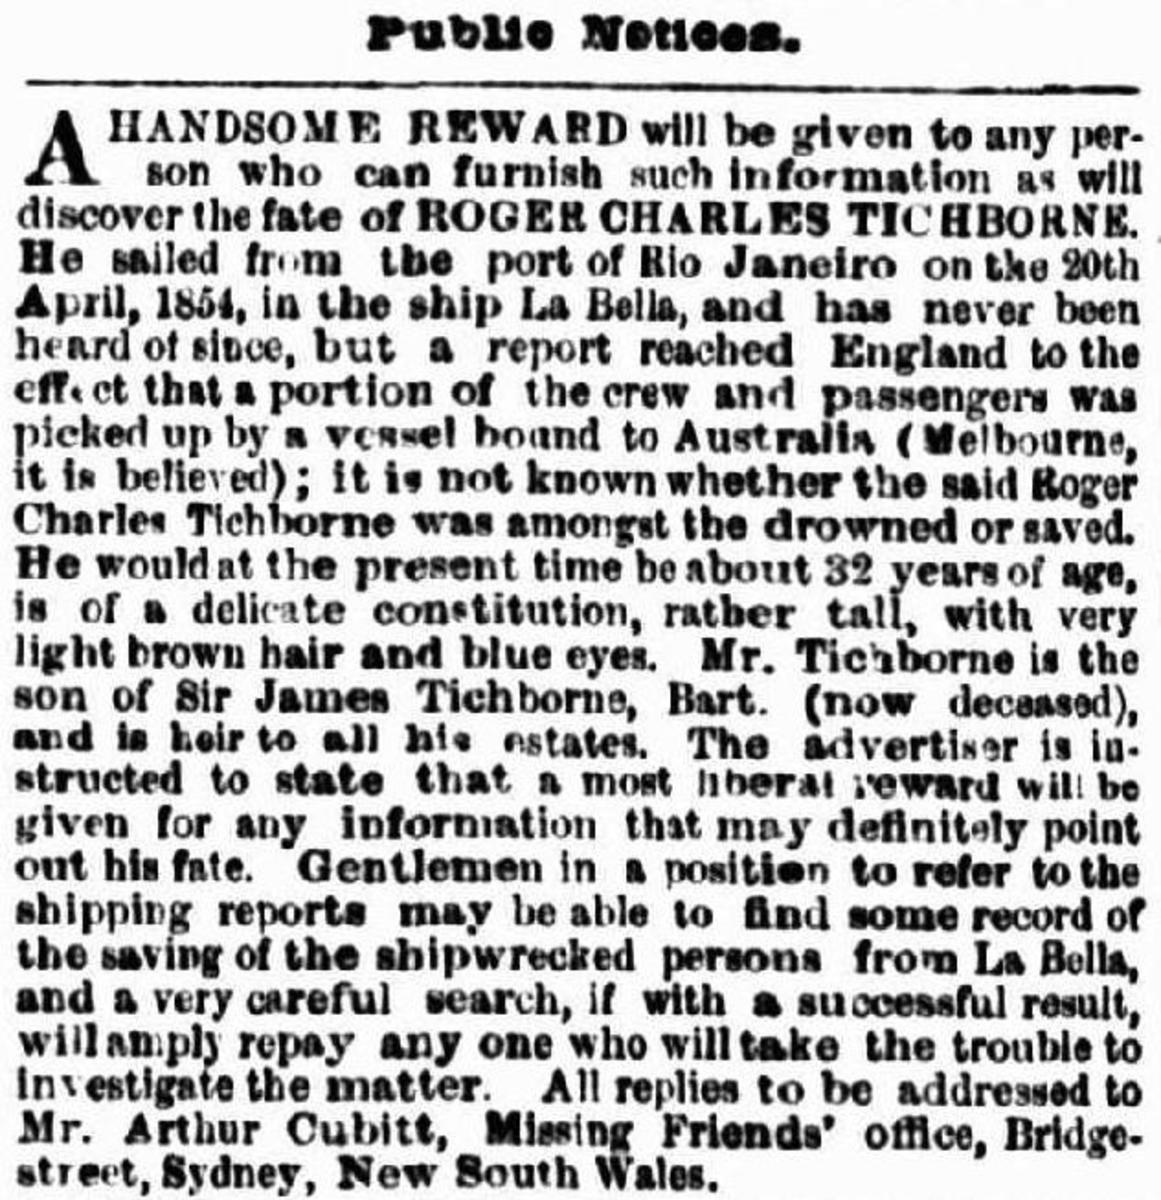 Lady Tichborne's appeal for news of her son.